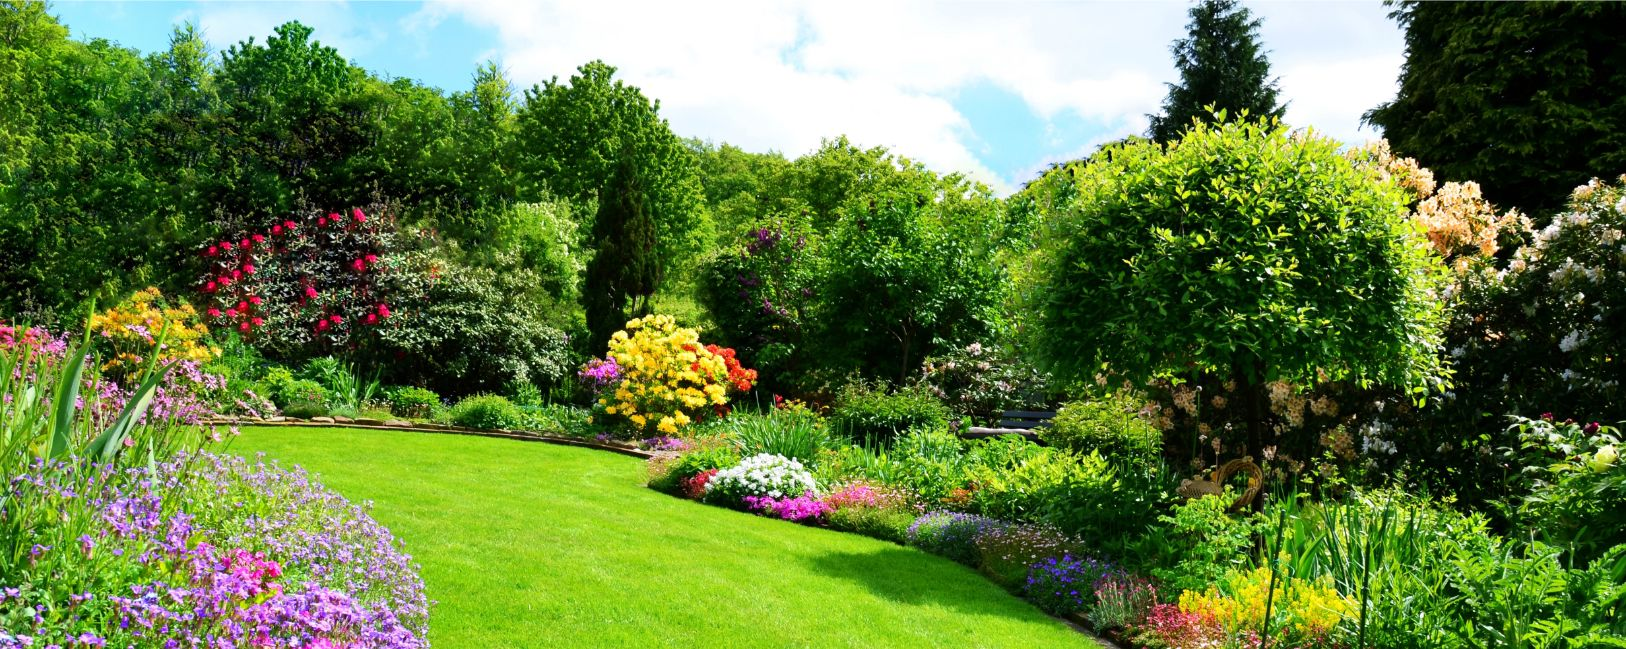 Landscaping Madison WI is the best landscaping company in Madison